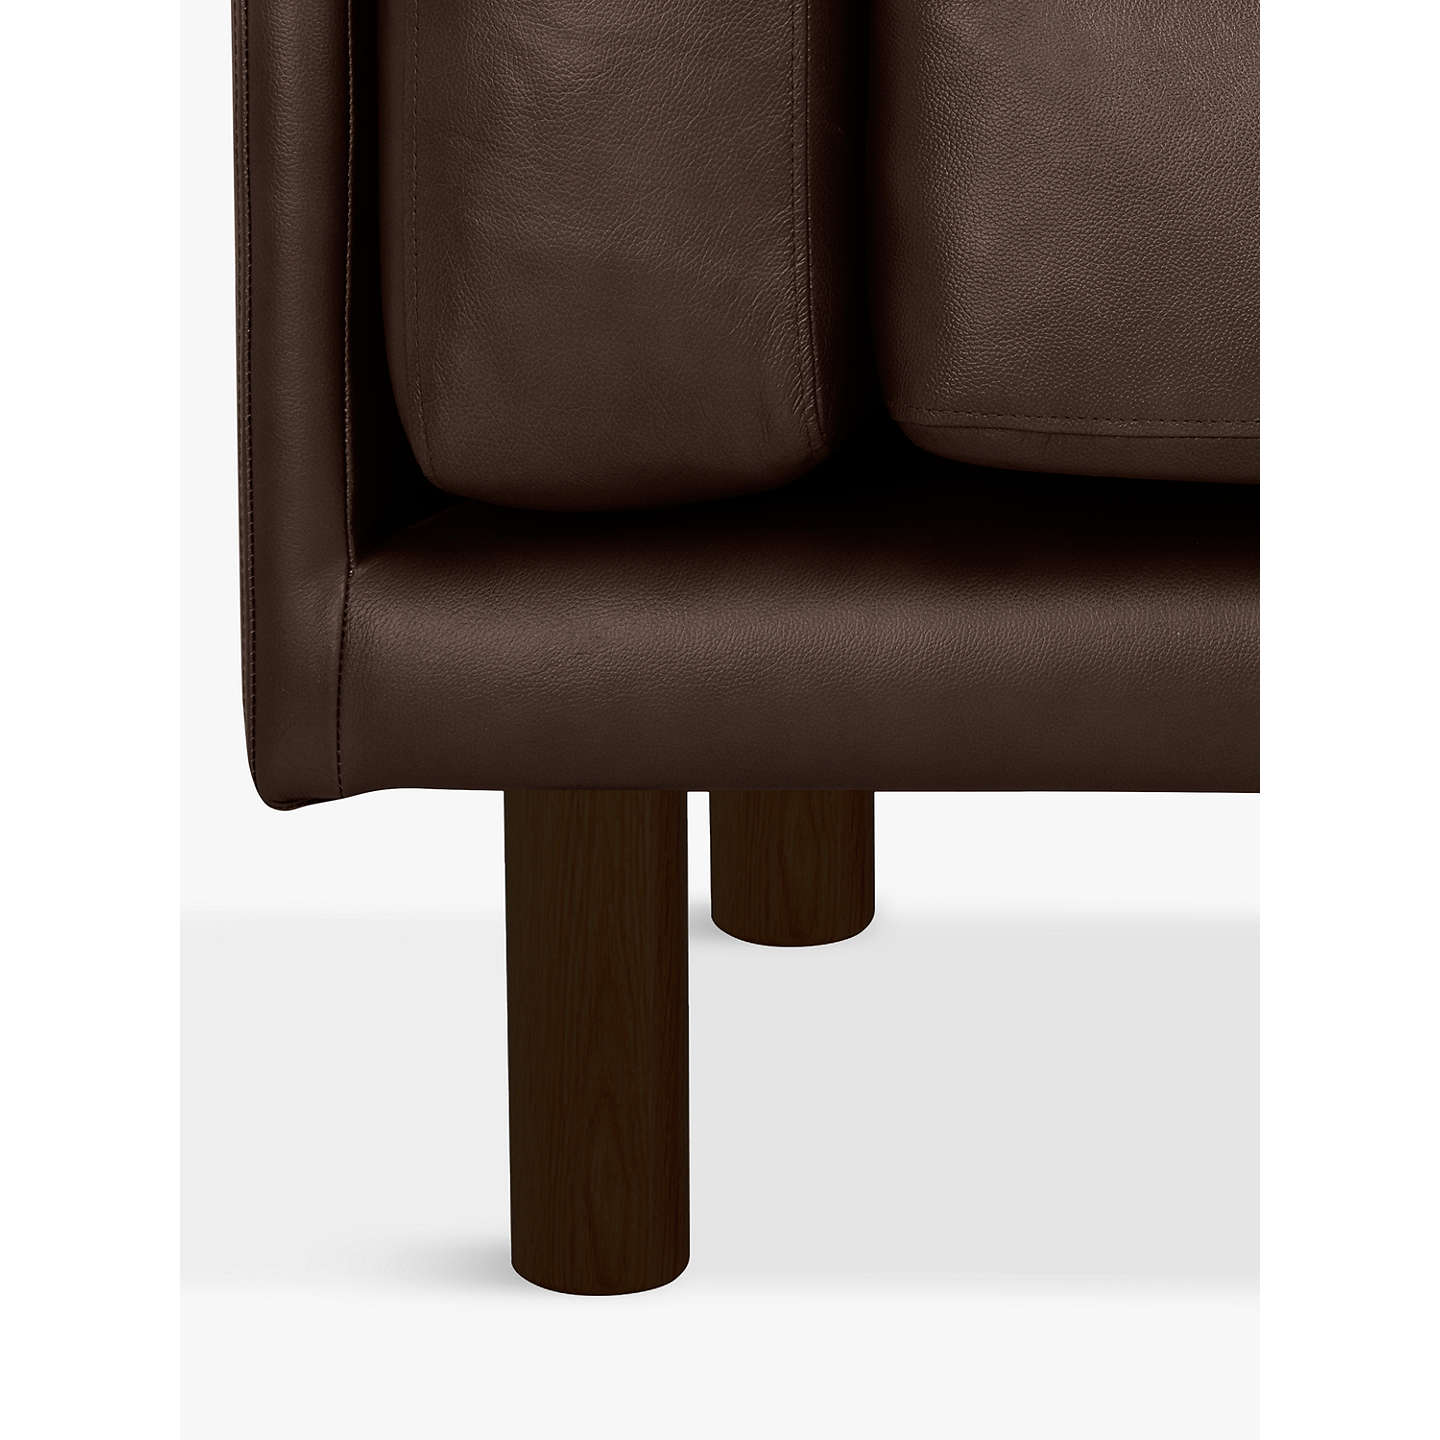 BuyDesign Project by John Lewis No.002 Large 3 Seater Leather Sofa, Dark Leg, Contempo Dark Chocolate Online at johnlewis.com